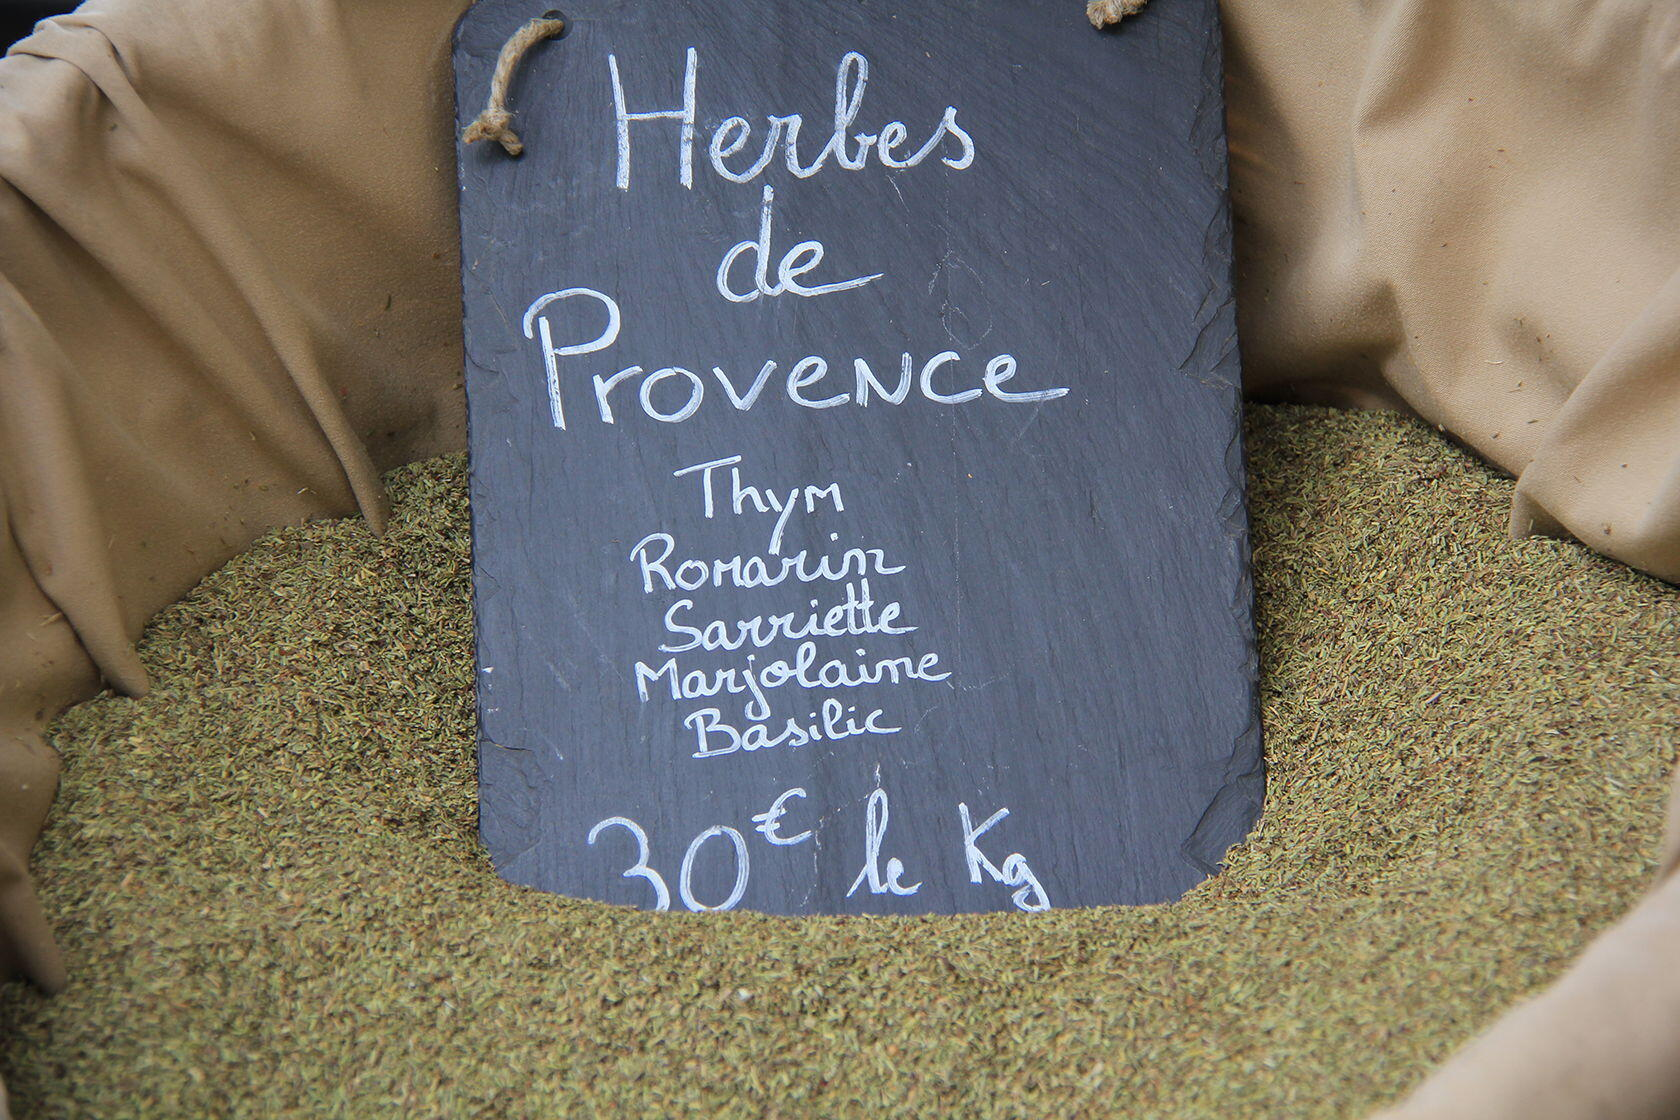 Souvenirs from Provence Herbes de Provence